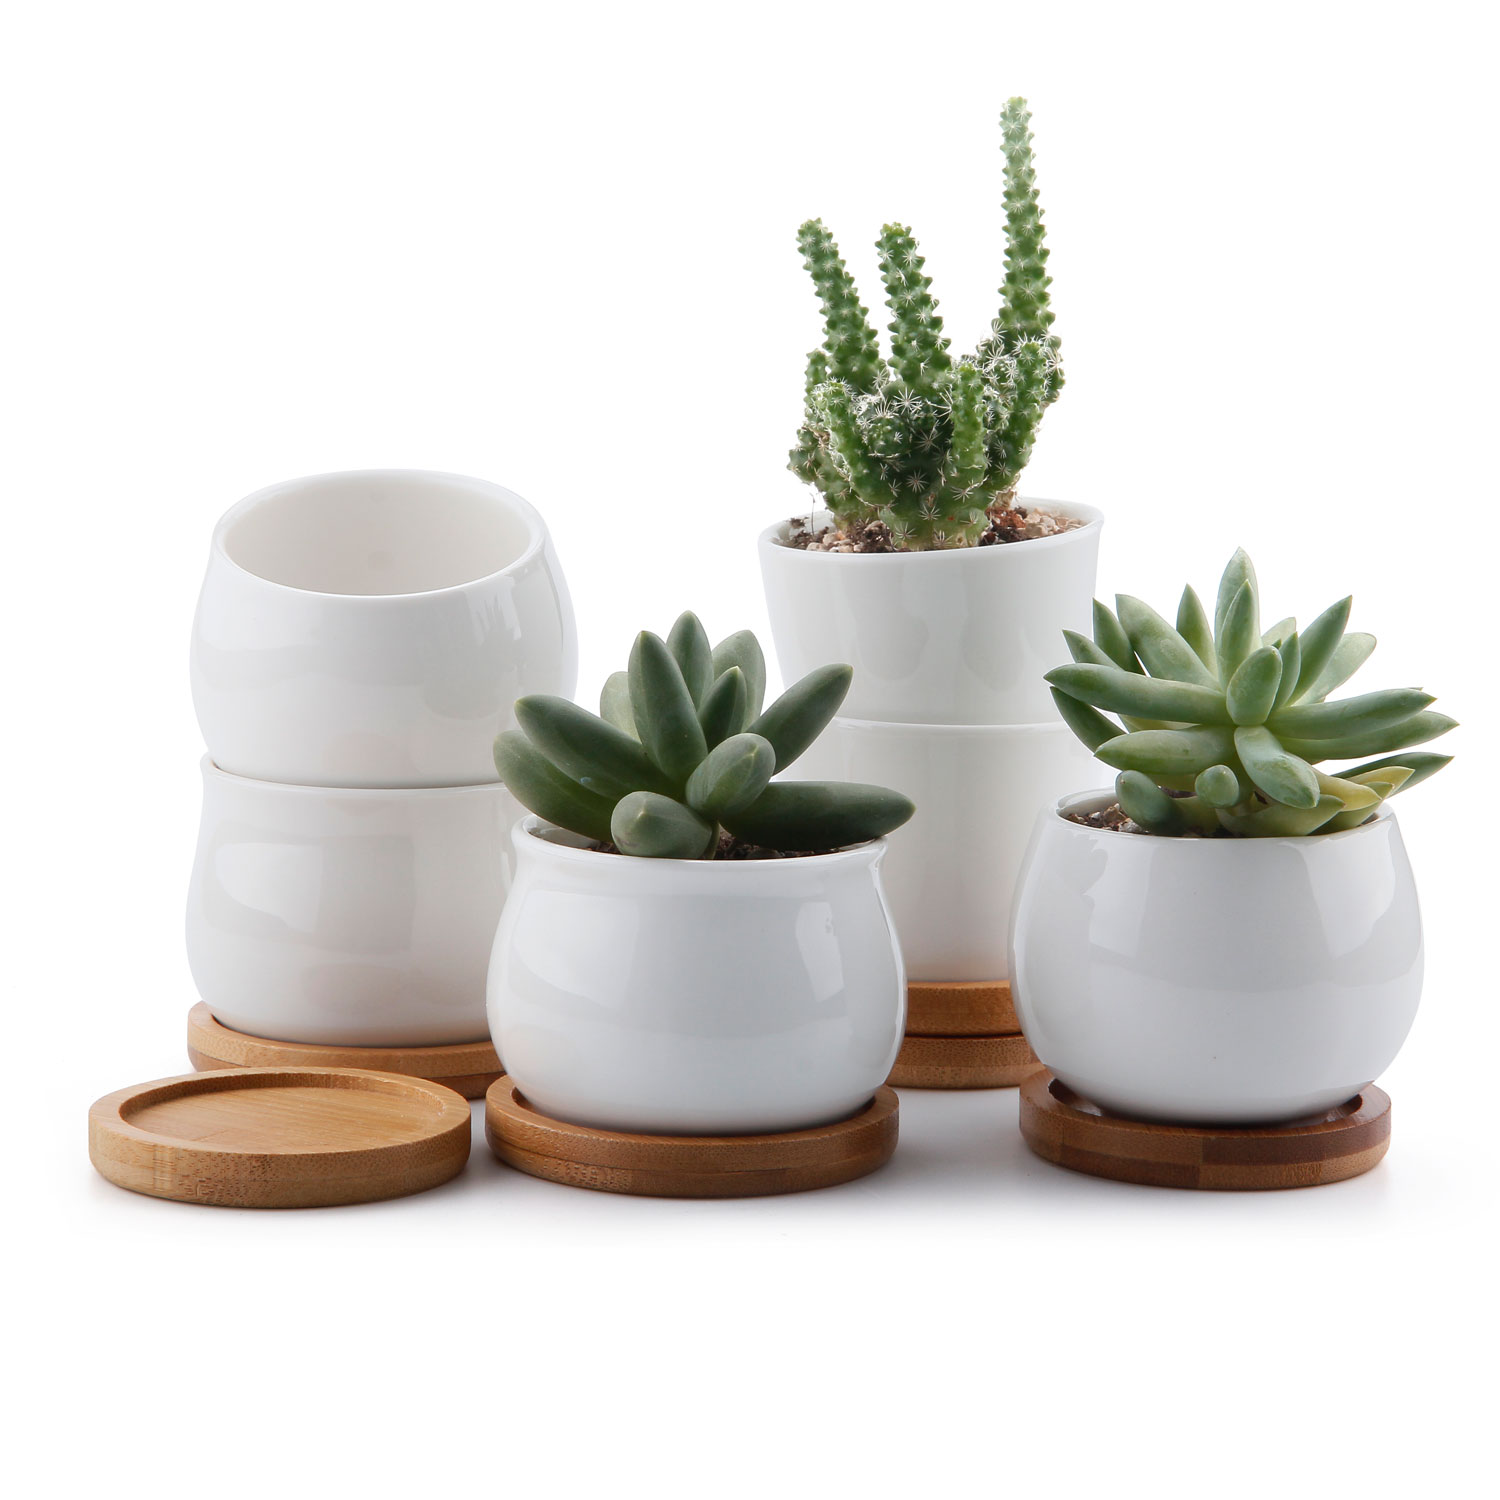 4.3 Inch Better-way Wavy Coil Round Ceramic Planter Modern Flower Pot Succulent Plant Container Indoor Pots Gift for Housewarming